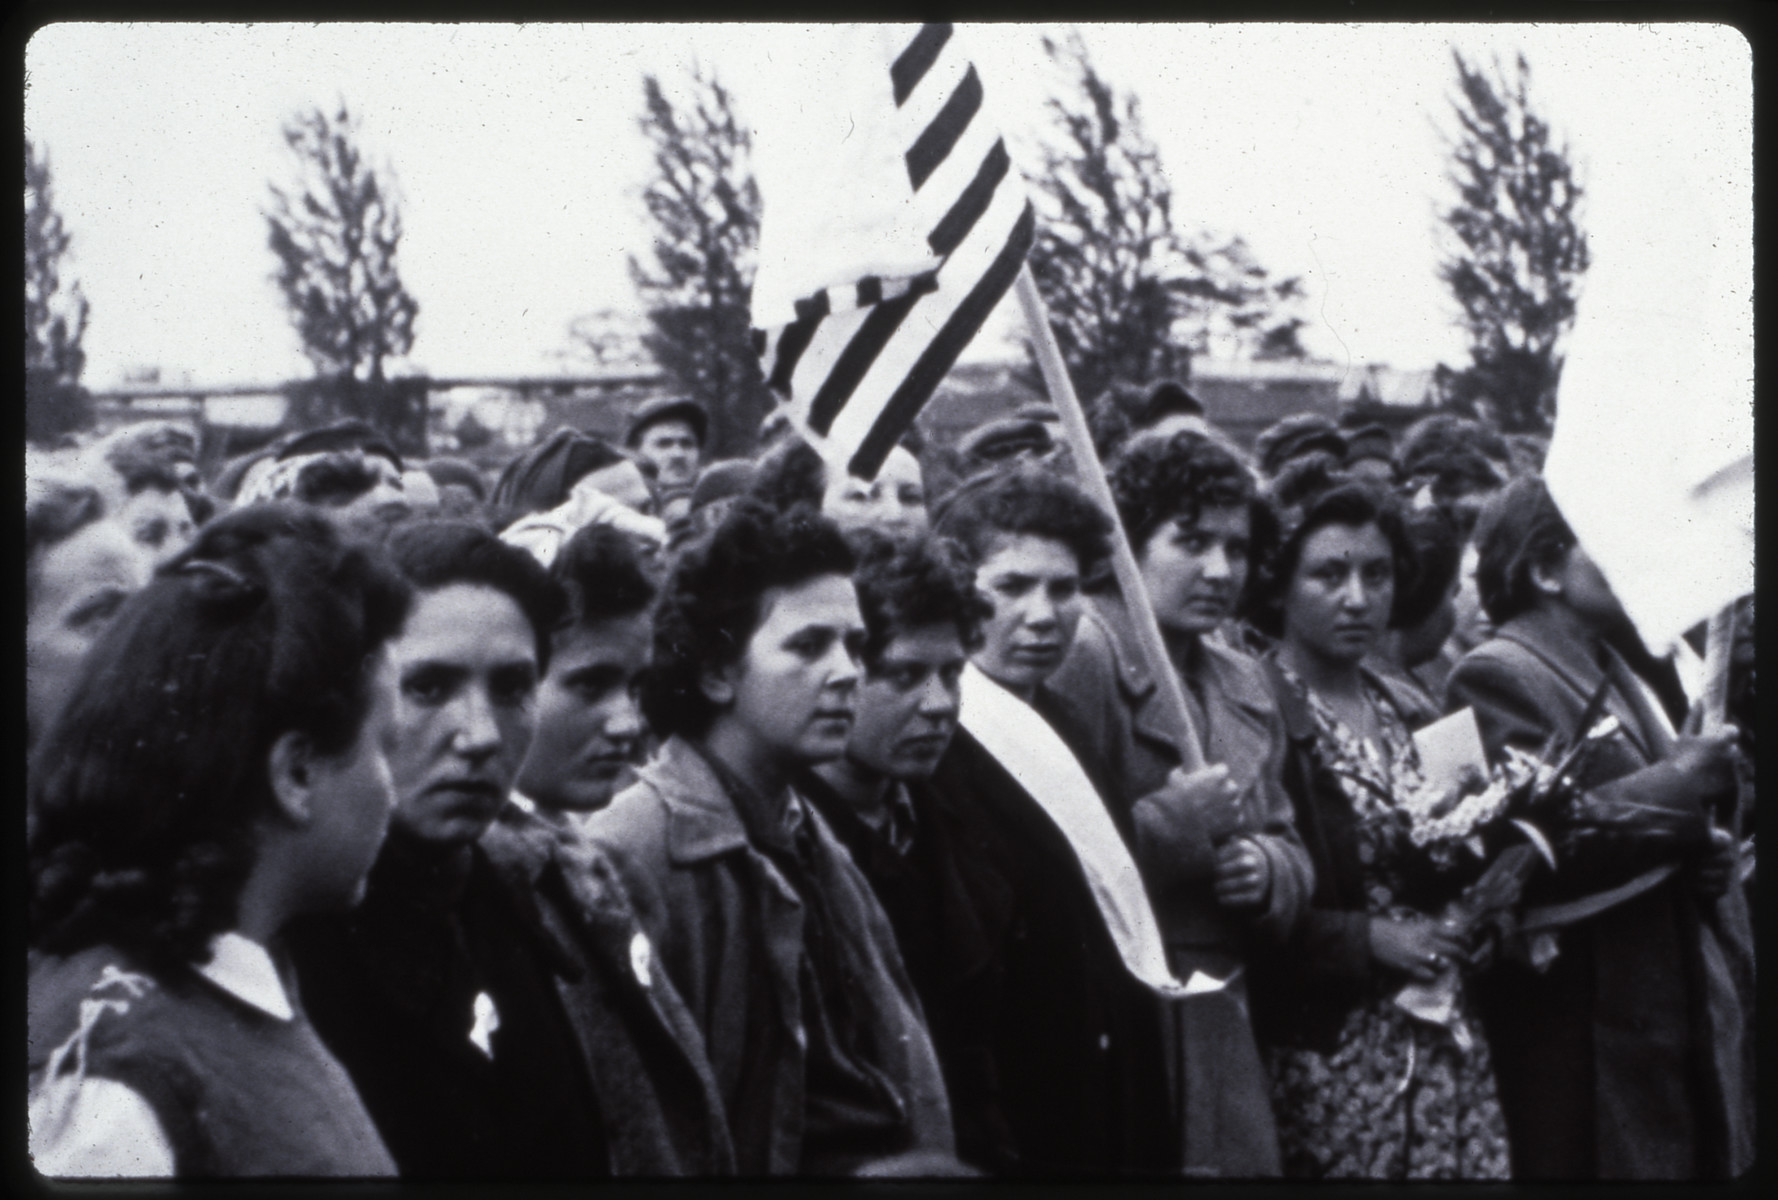 Female survivors of the Dachau concentration camp gather for a memorial service after liberation.